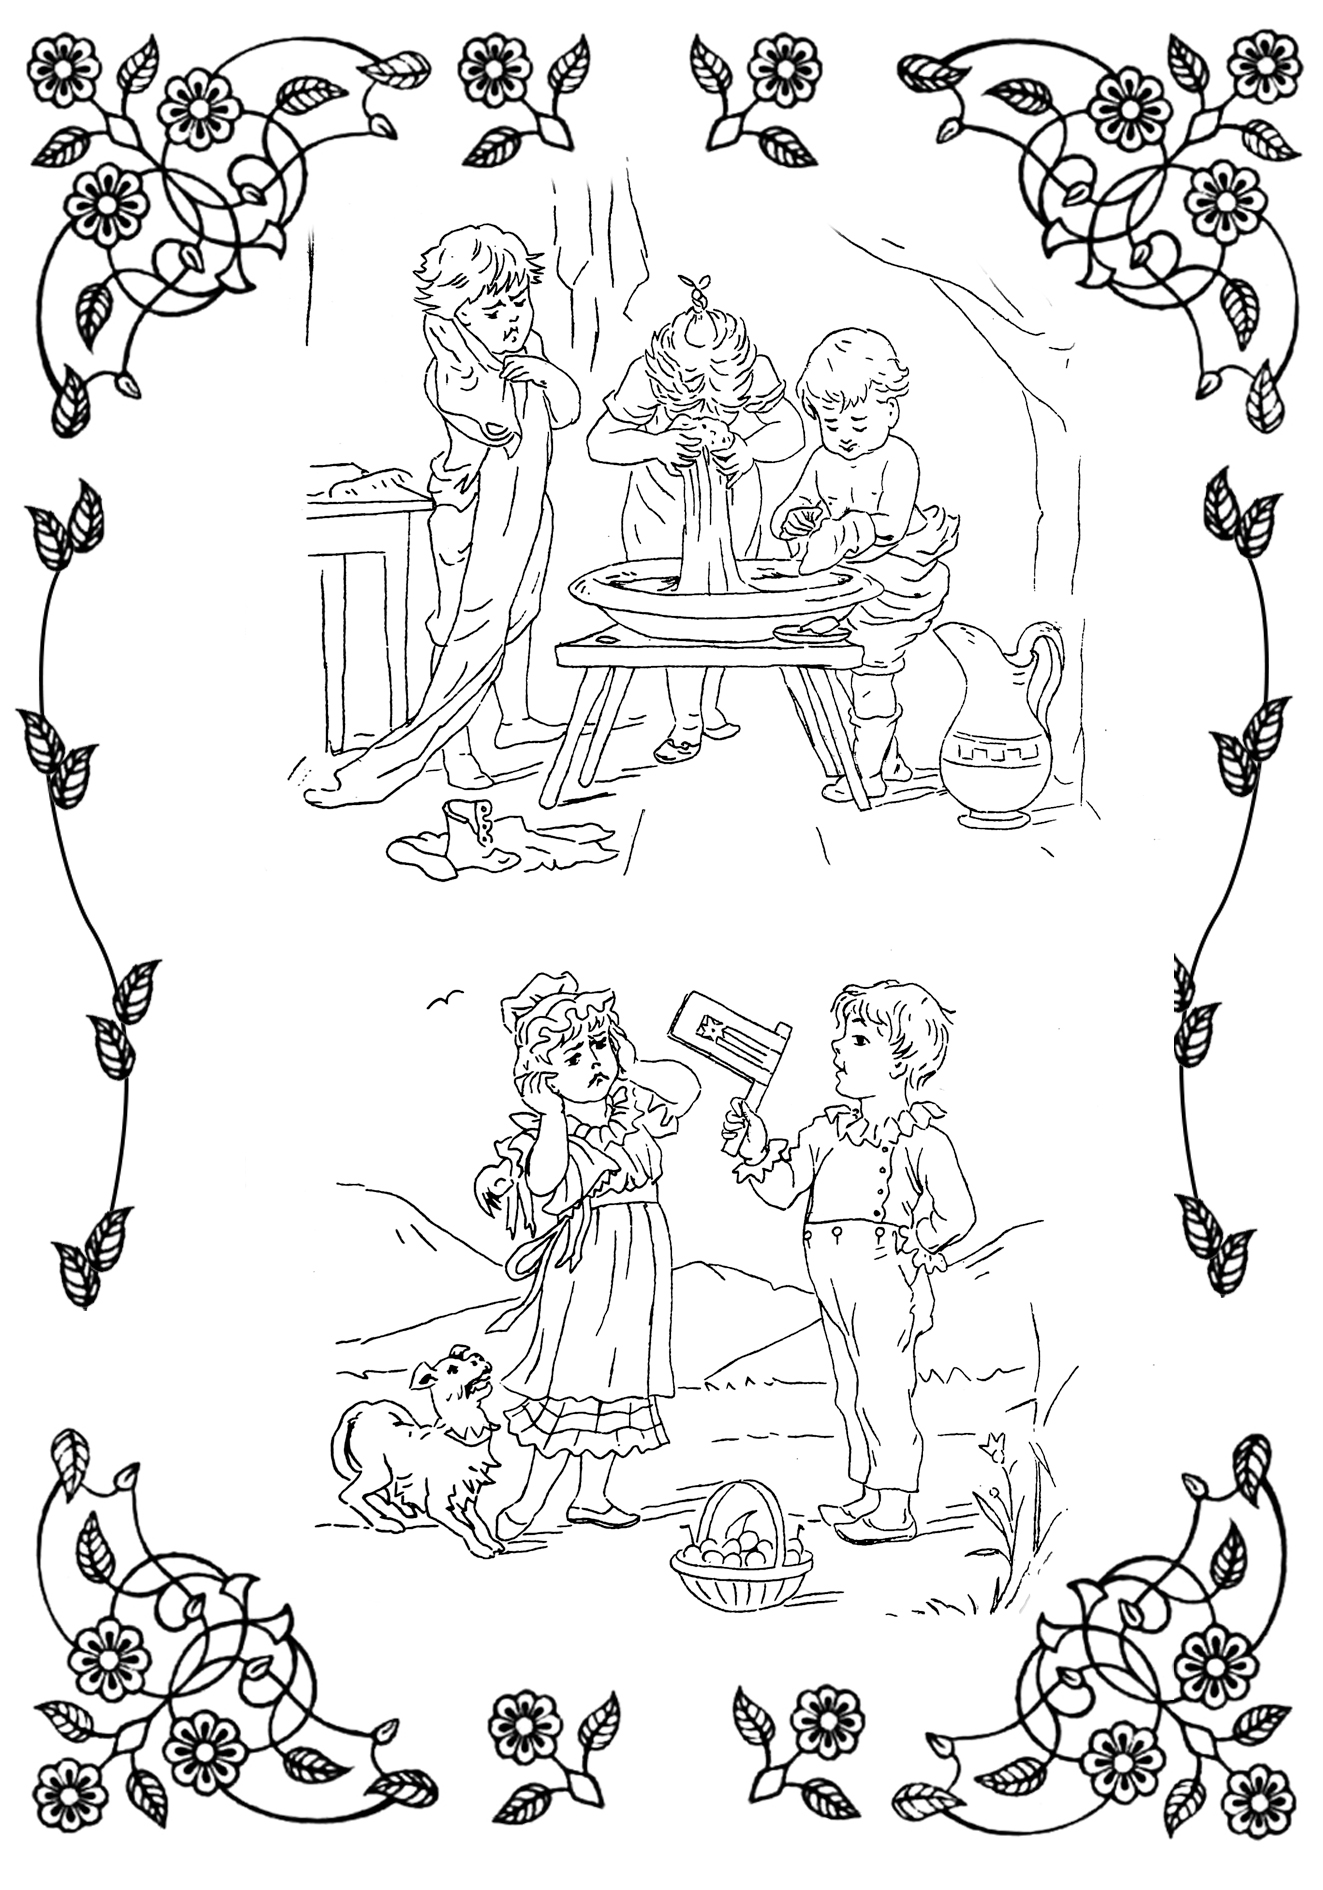 victorian colouring sheets victorian woman coloring pages free printable victorian colouring victorian sheets